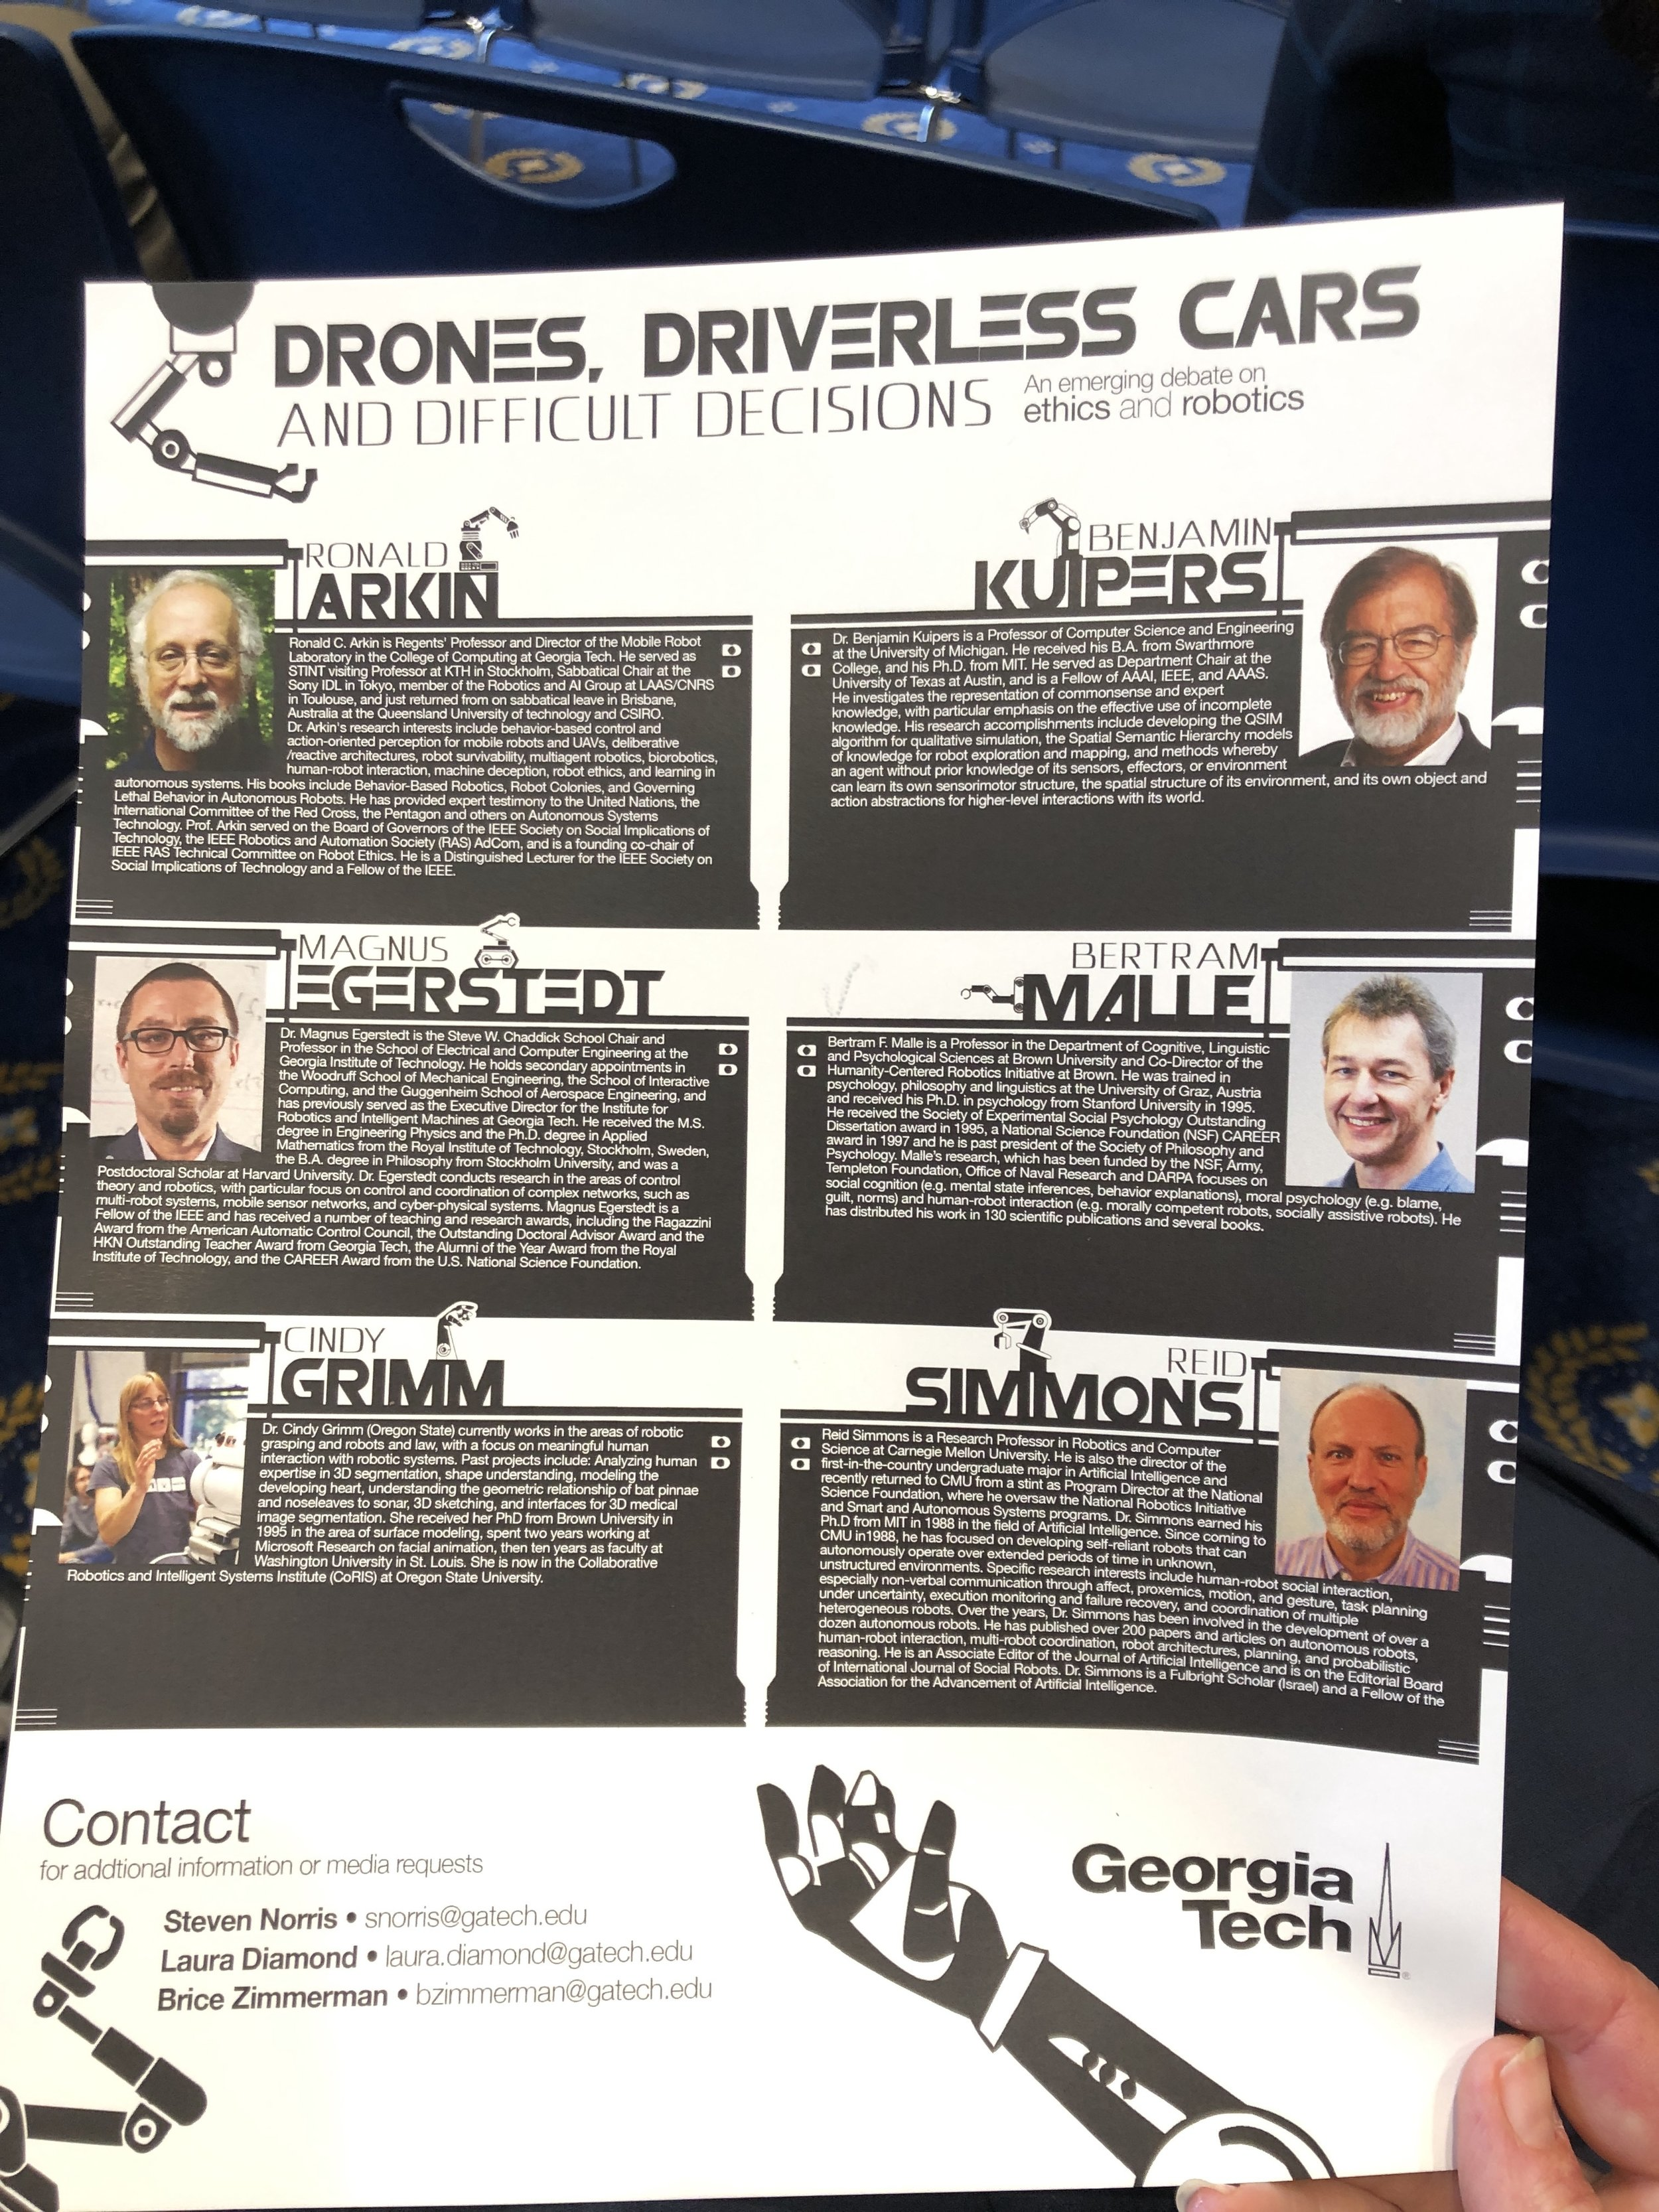 Drones, Driverless Cars & Ethics